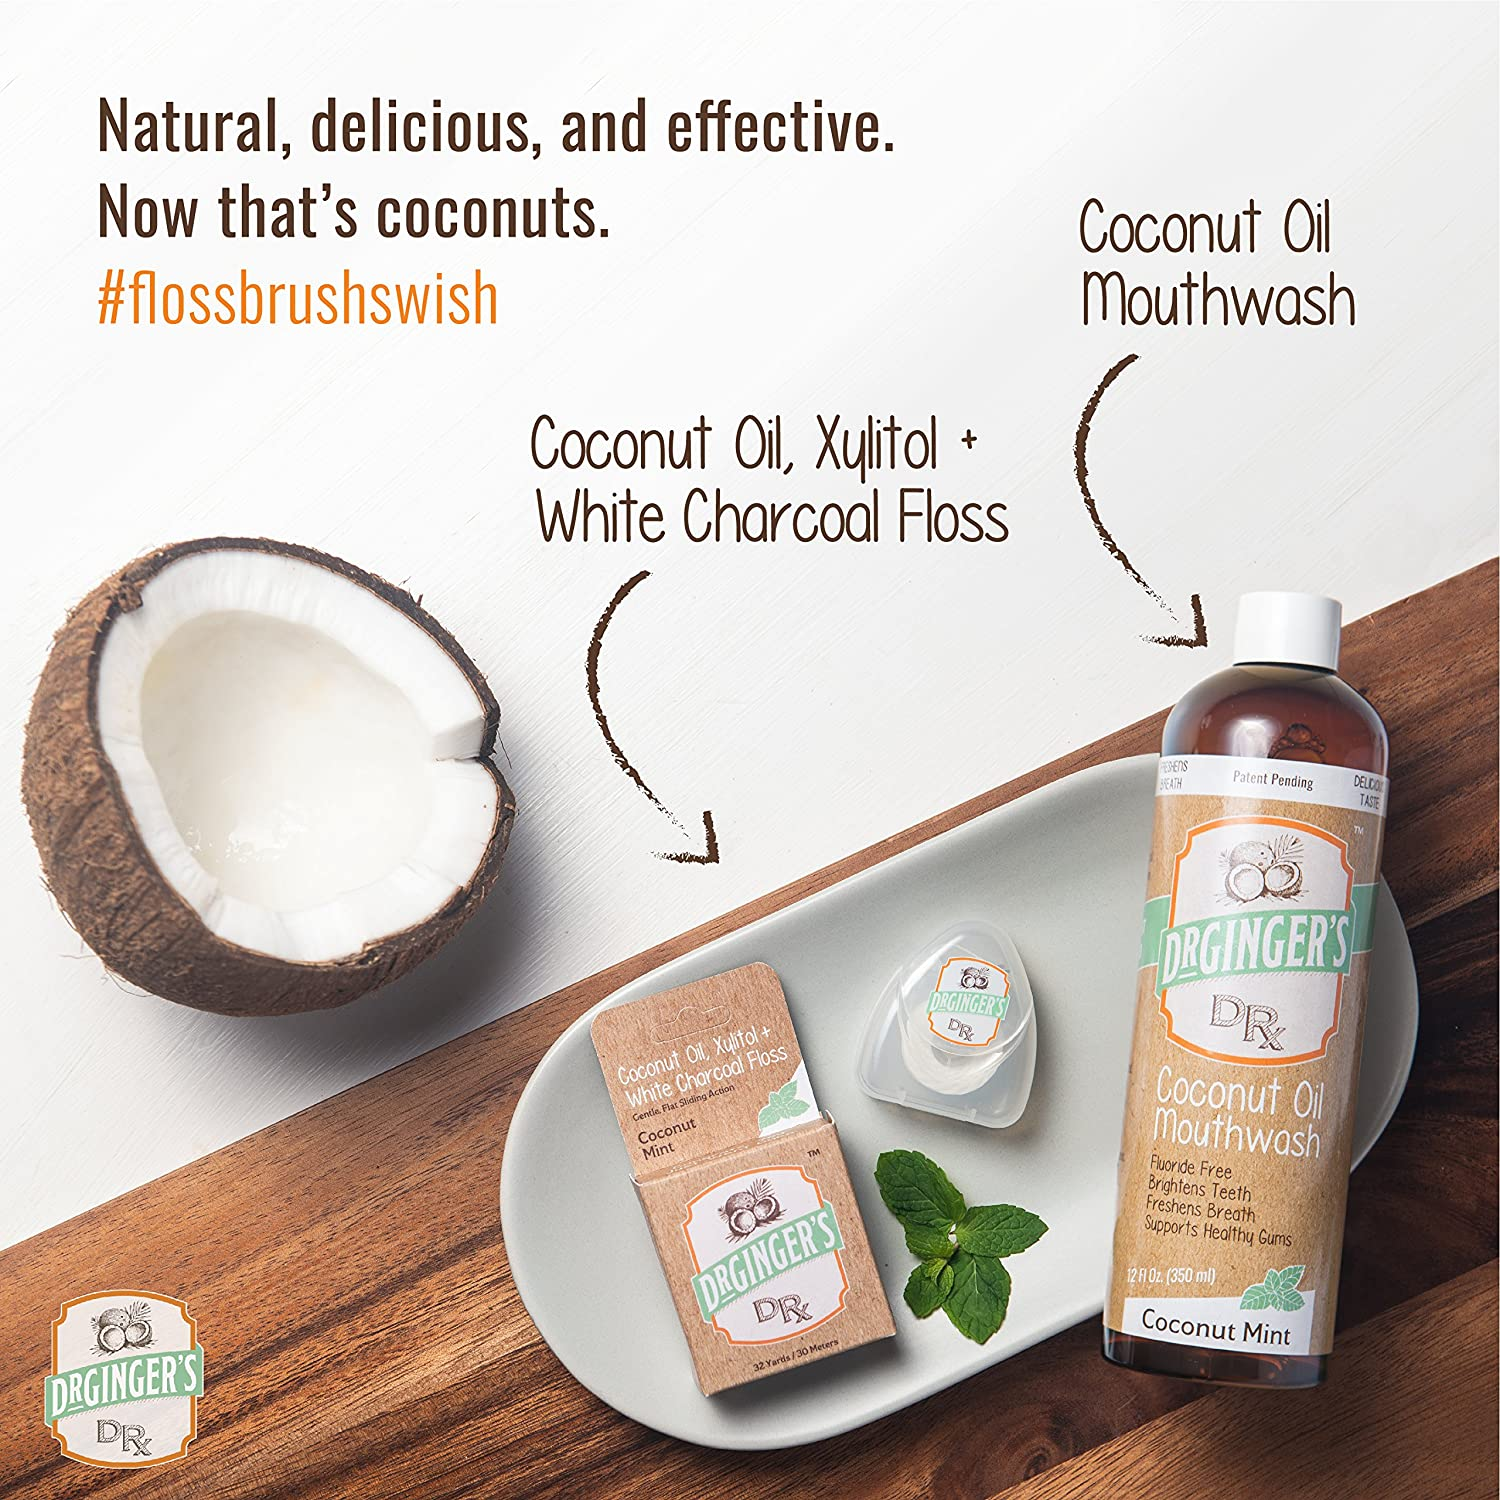 Natural, delicious, and effective. Now that's coconuts.